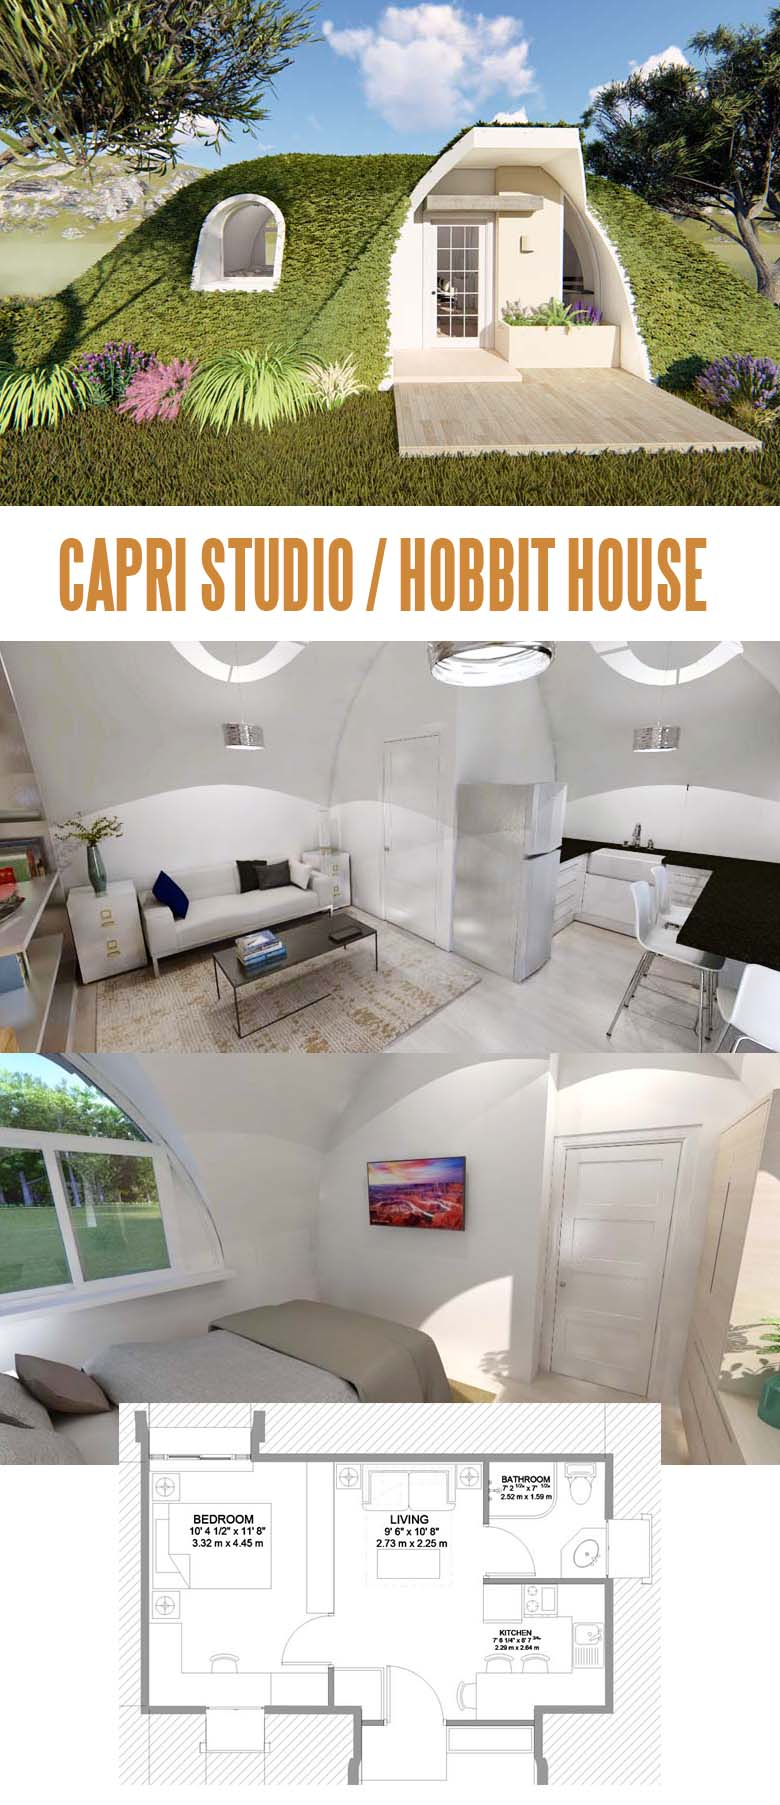 Capri Tiny Home. Stop envying Bilbo's fancy Hobbit house! Get your own tiny real estate!